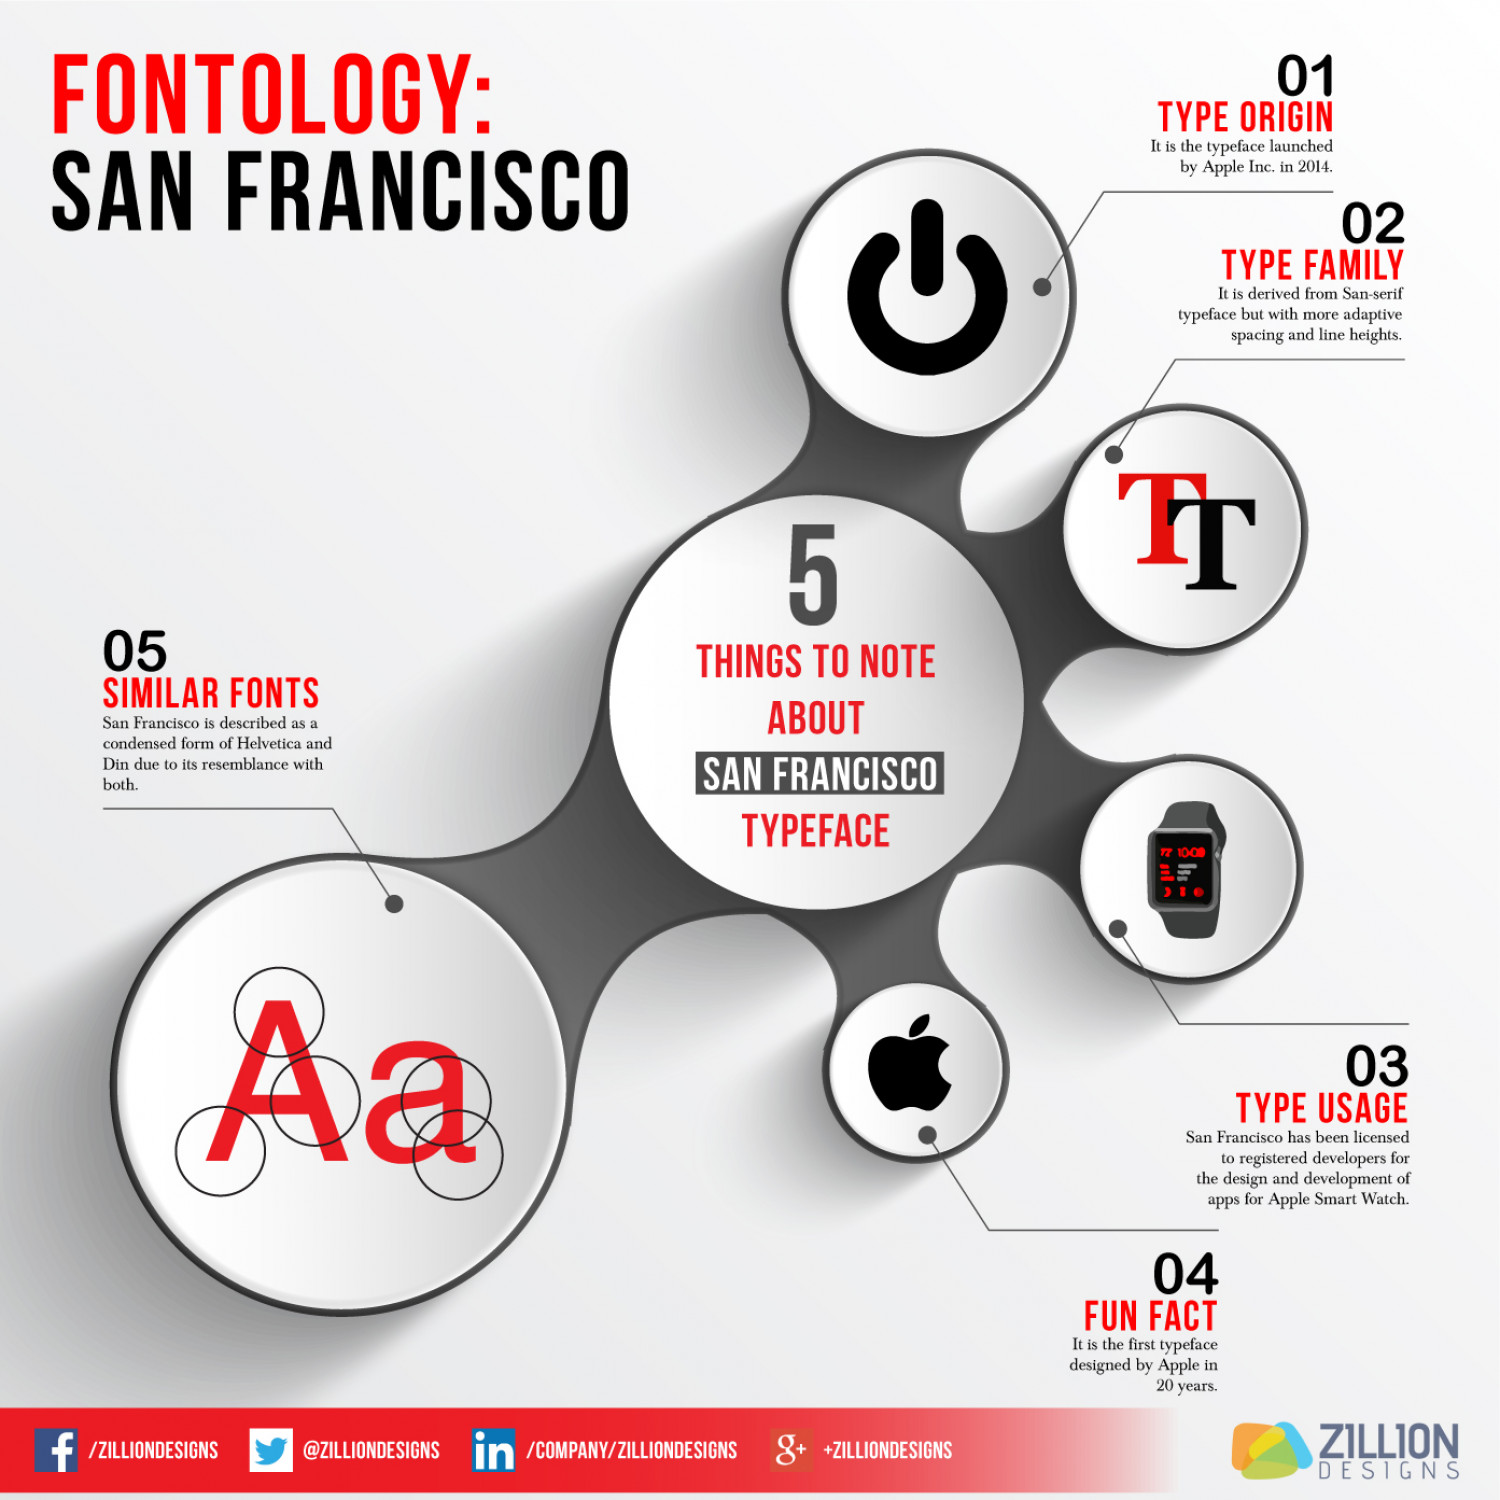 5 Things to Note About San Francisco Typeface Infographic